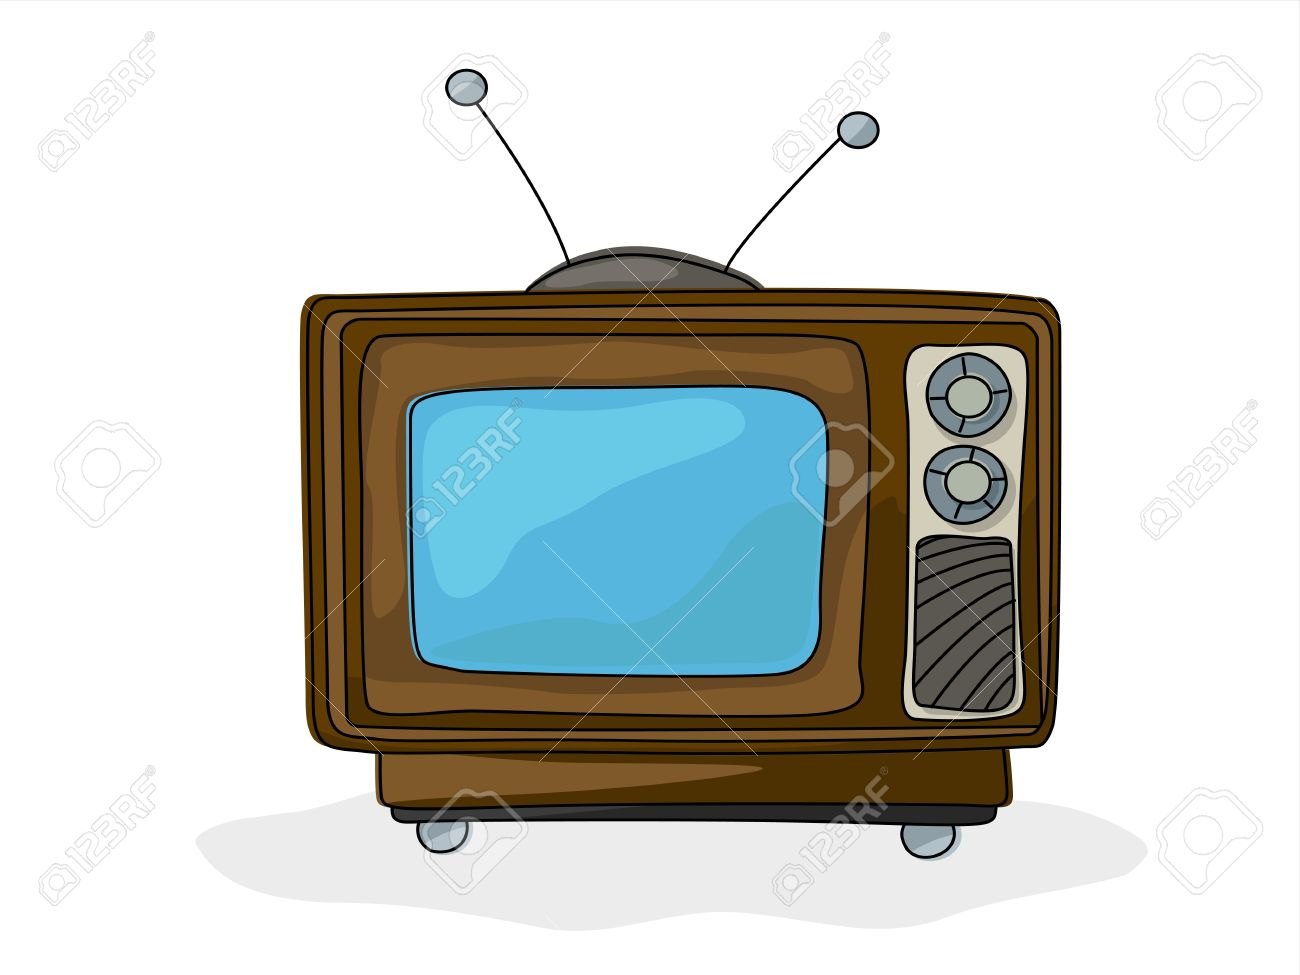 1300x975 Retro Style Tv Drawing Over White Background Royalty Free Cliparts